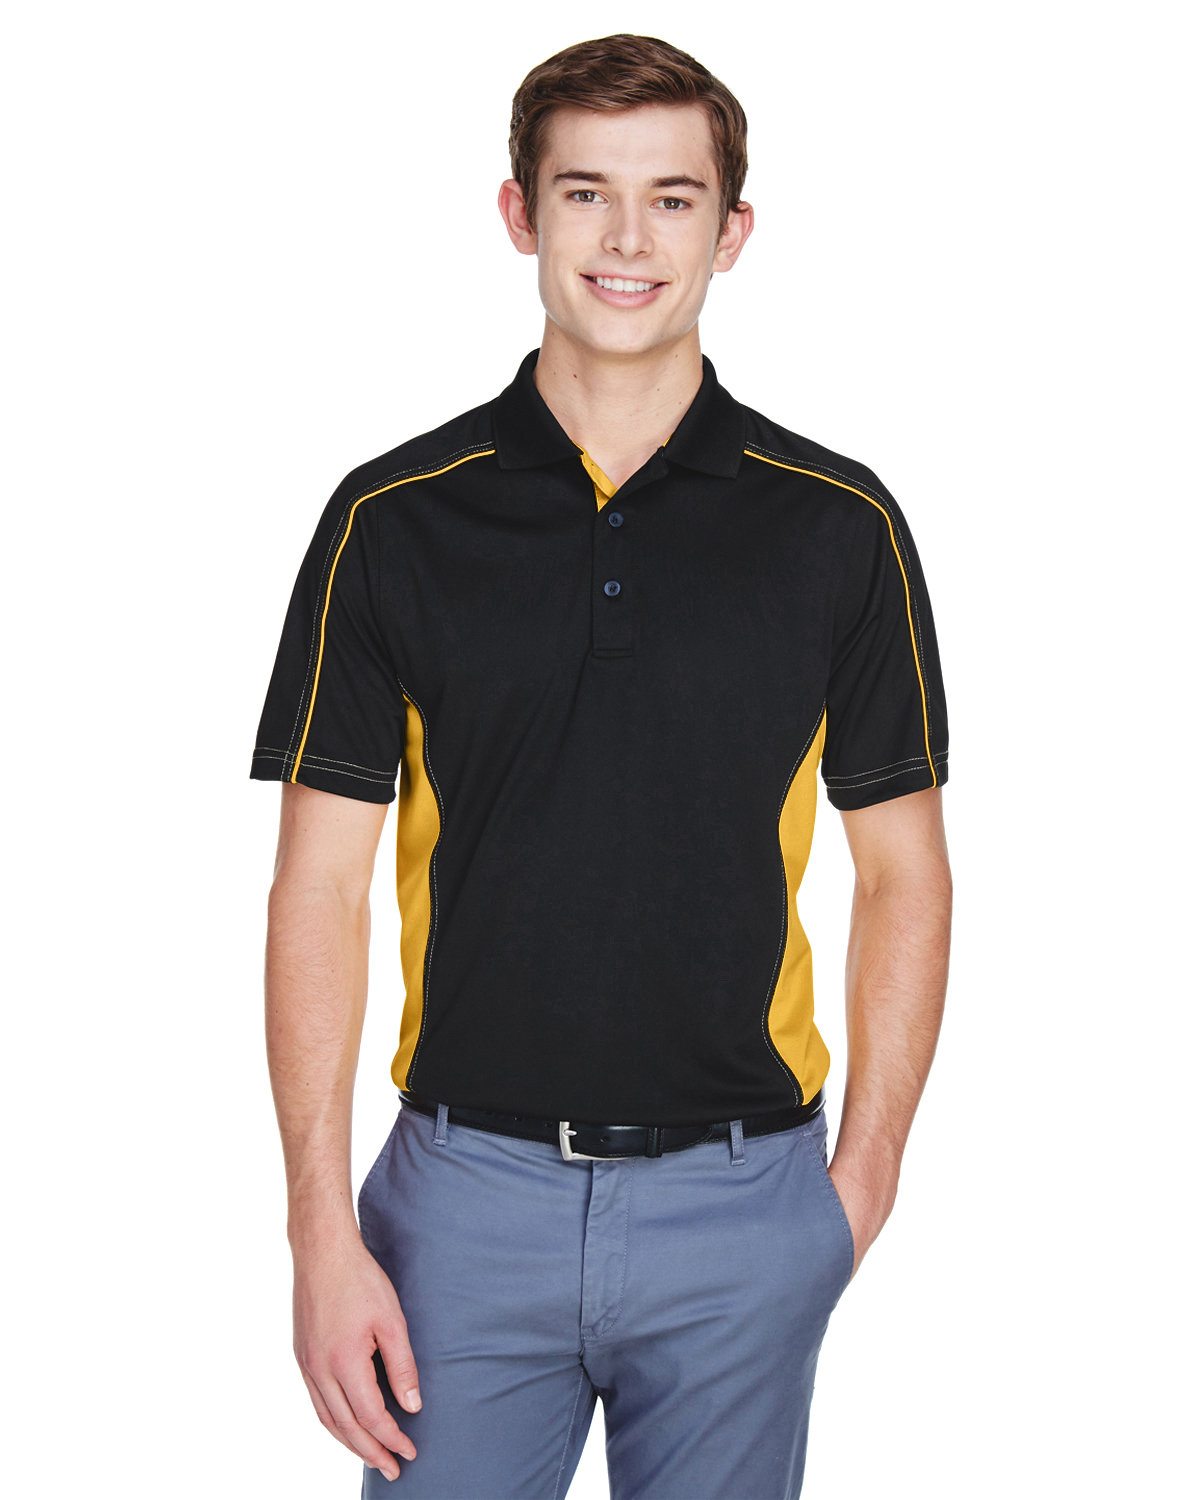 Extreme Men's Eperformance™ Fuse Snag Protection Plus Colorblock Polo BLK/ CMPS GOLD